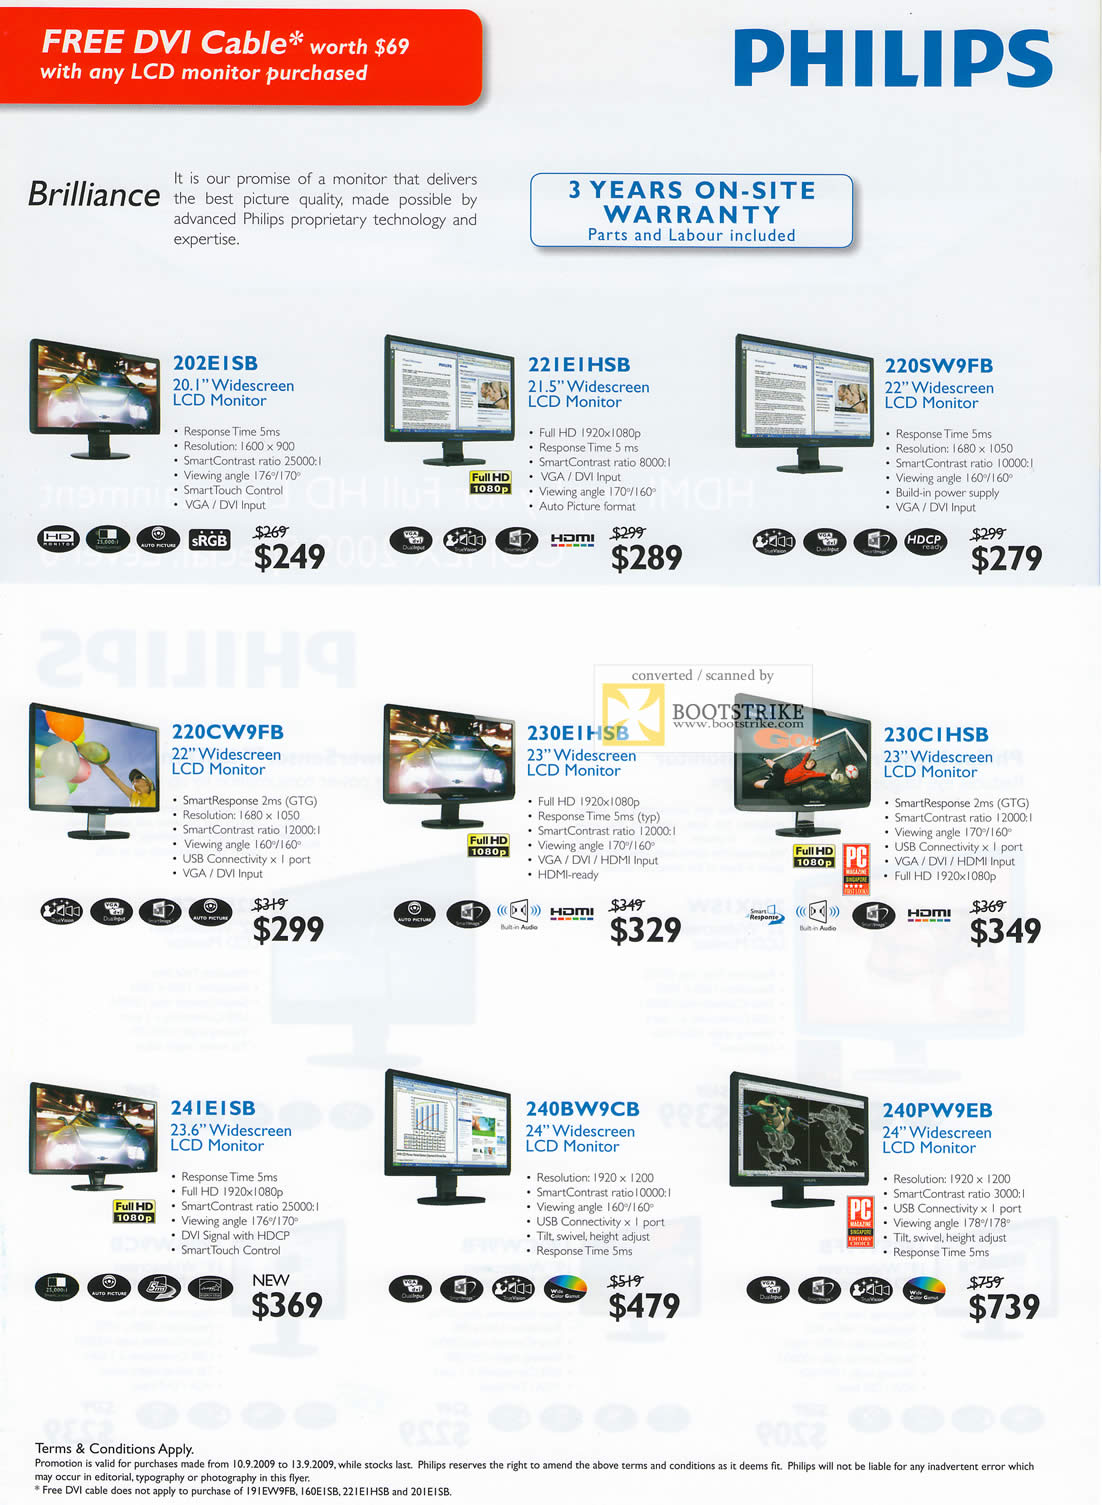 Comex 2009 price list image brochure of Philips LCD Monitors Brilliance